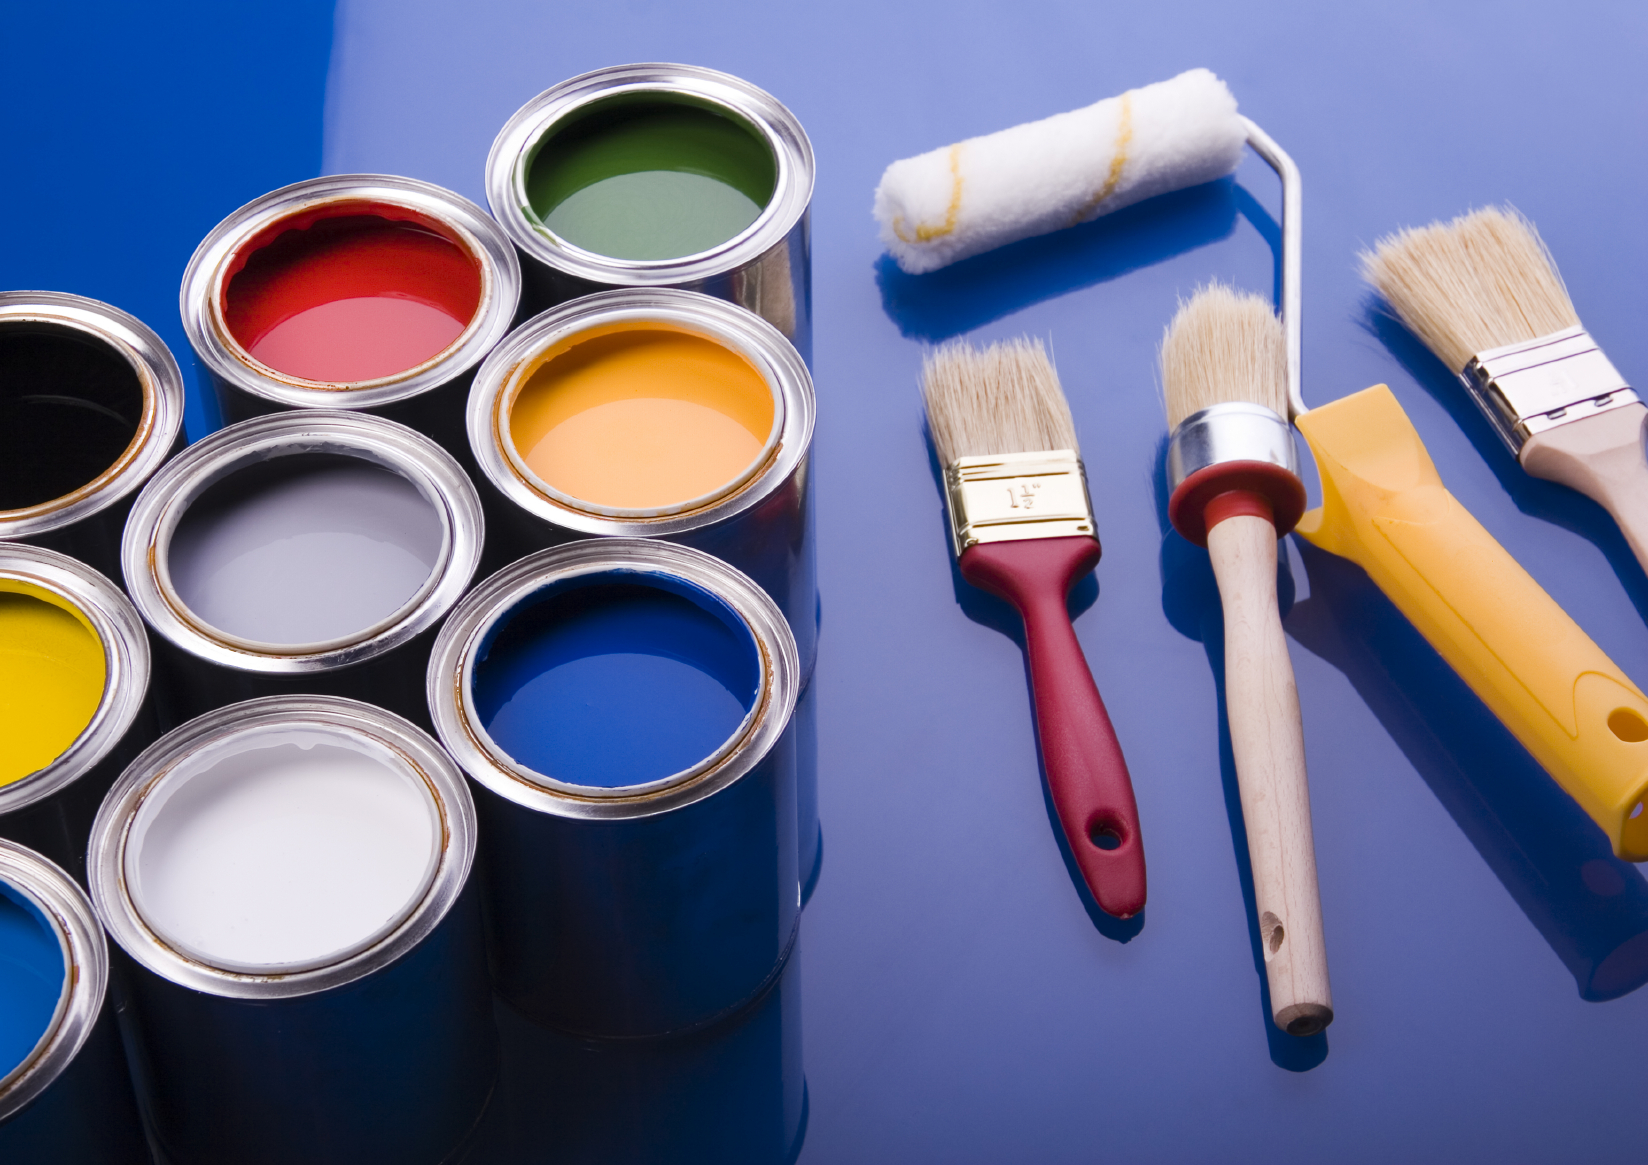 Choosing House Paint May Be Just Another Errand For Some While For Others  It Is A Terrifying Experience. The Colour Of A House Can Make It Very  Welcoming ...